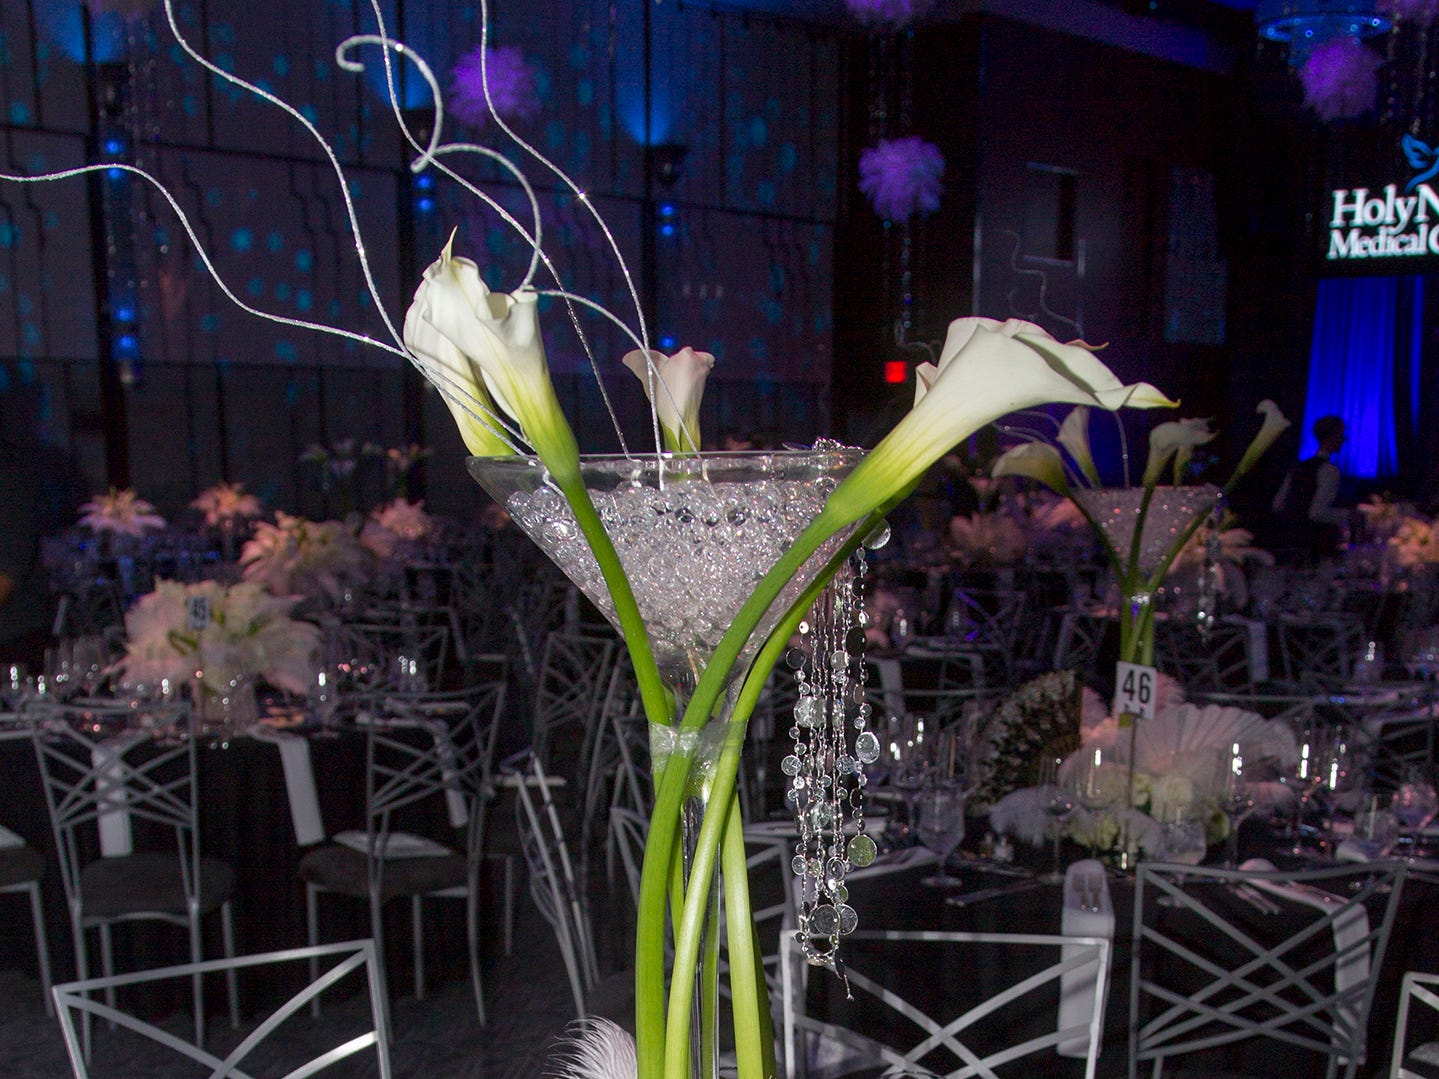 Holy Name Medical Center held its 2018 Founders Ball in NYC at Ziegfeld Ballroom. 11/17/2018